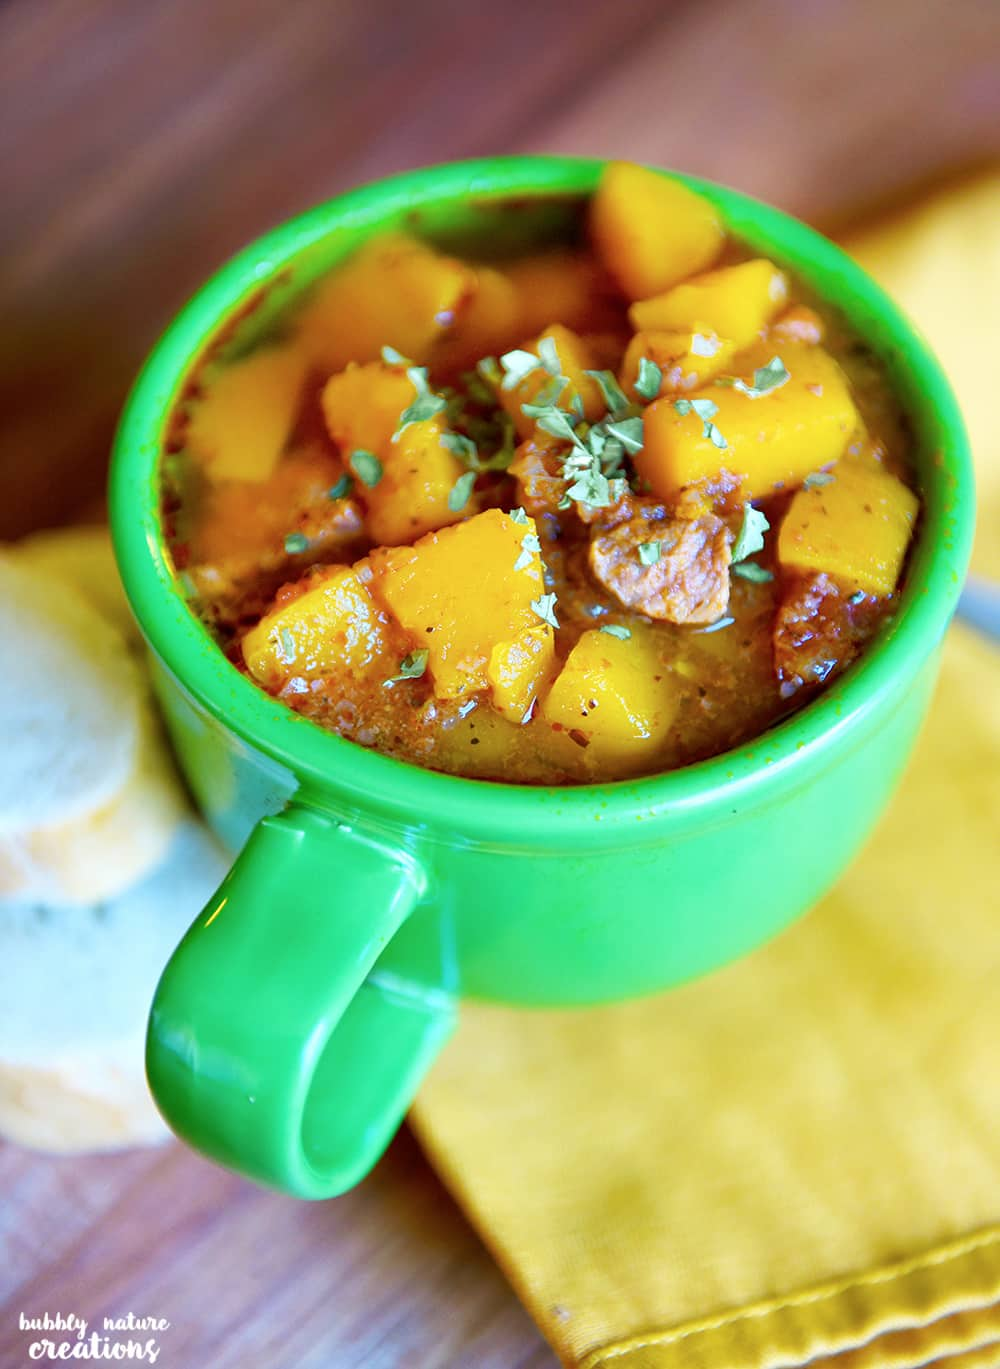 Winter Squash and Beef Stew